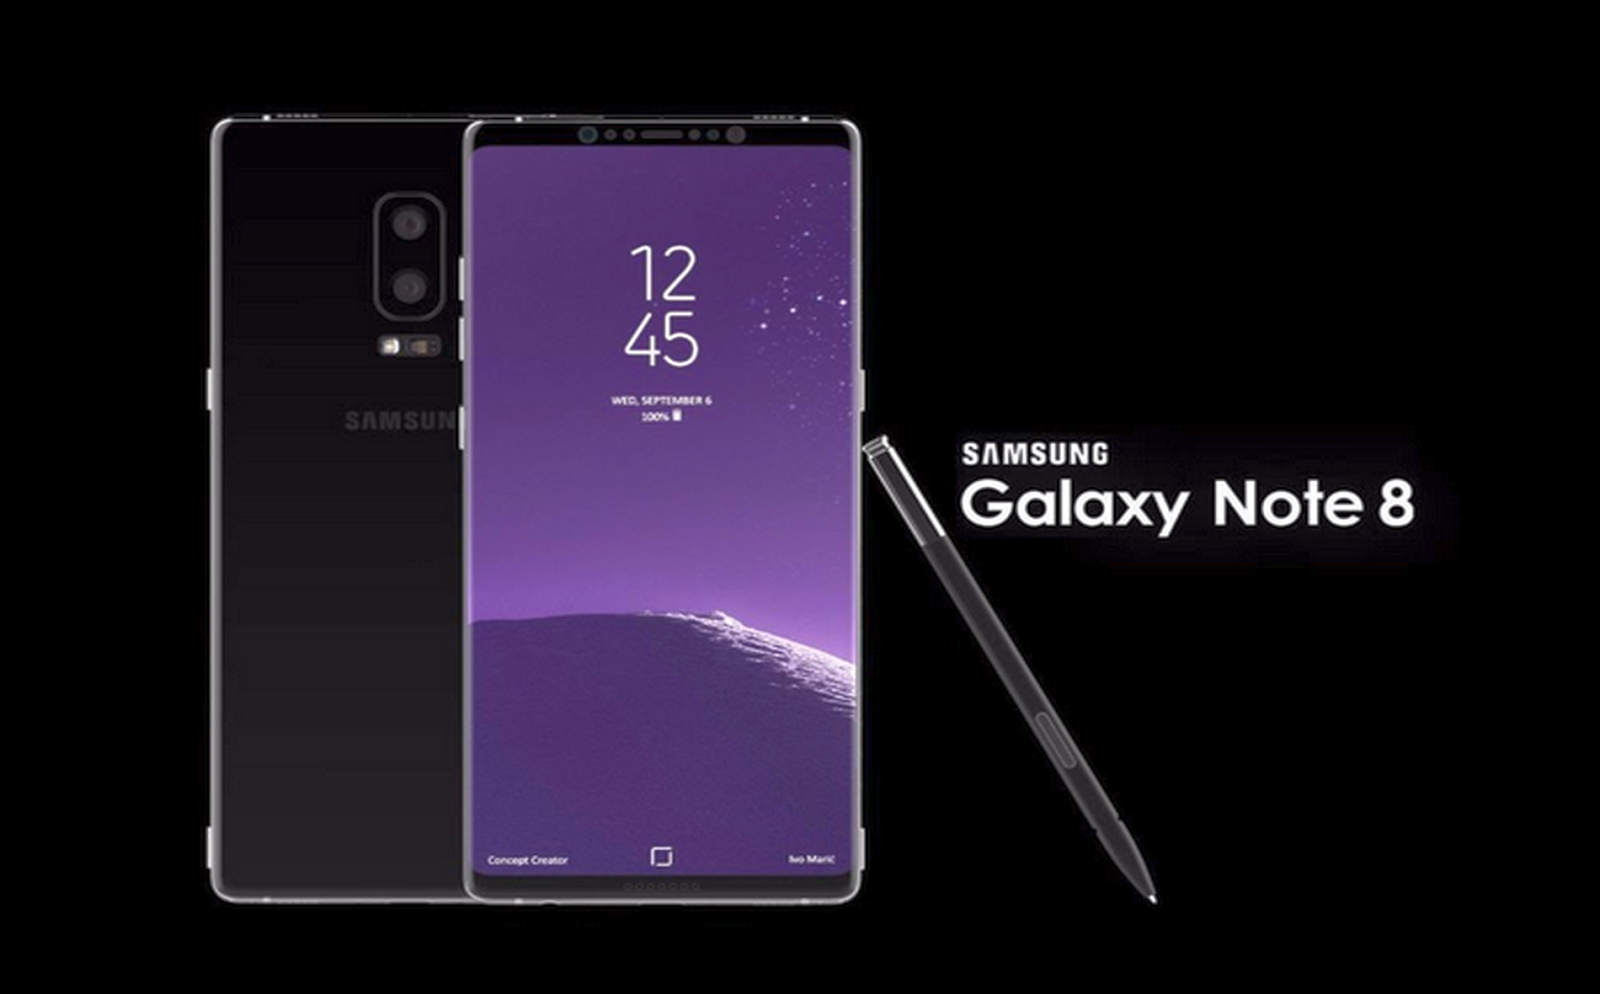 samsung galaxy note 8 user guide manual tutorial user guide manual pdf rh userguidemanualpdf com samsung galaxy note 10.1 manual / user guide samsung galaxy note 3 manual user guide